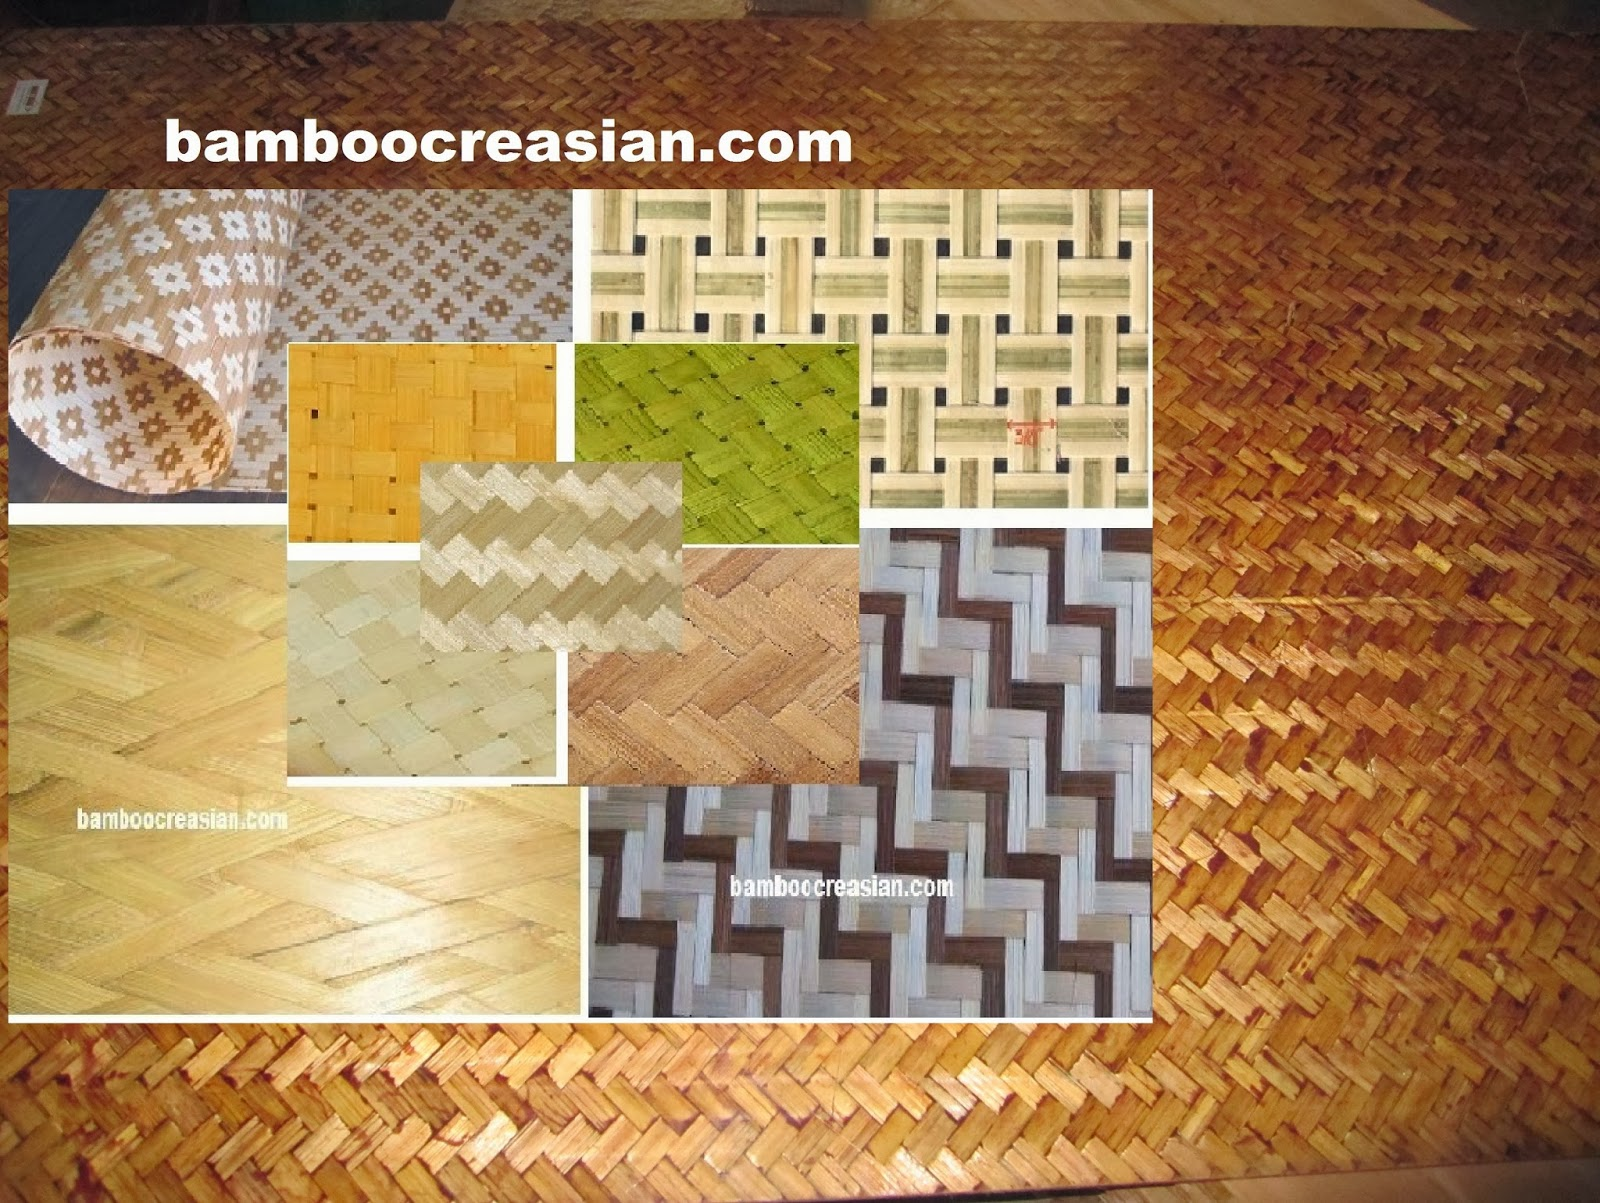 U003d#Bamboo Wall Covering,Natural,u0026 Tropical Wall Covering(Covering Walls U0026  Ceiling Covering): Woven Panels, Bamboo Matting, Bamboo Panels, Bamboo Wall  Panels, ...